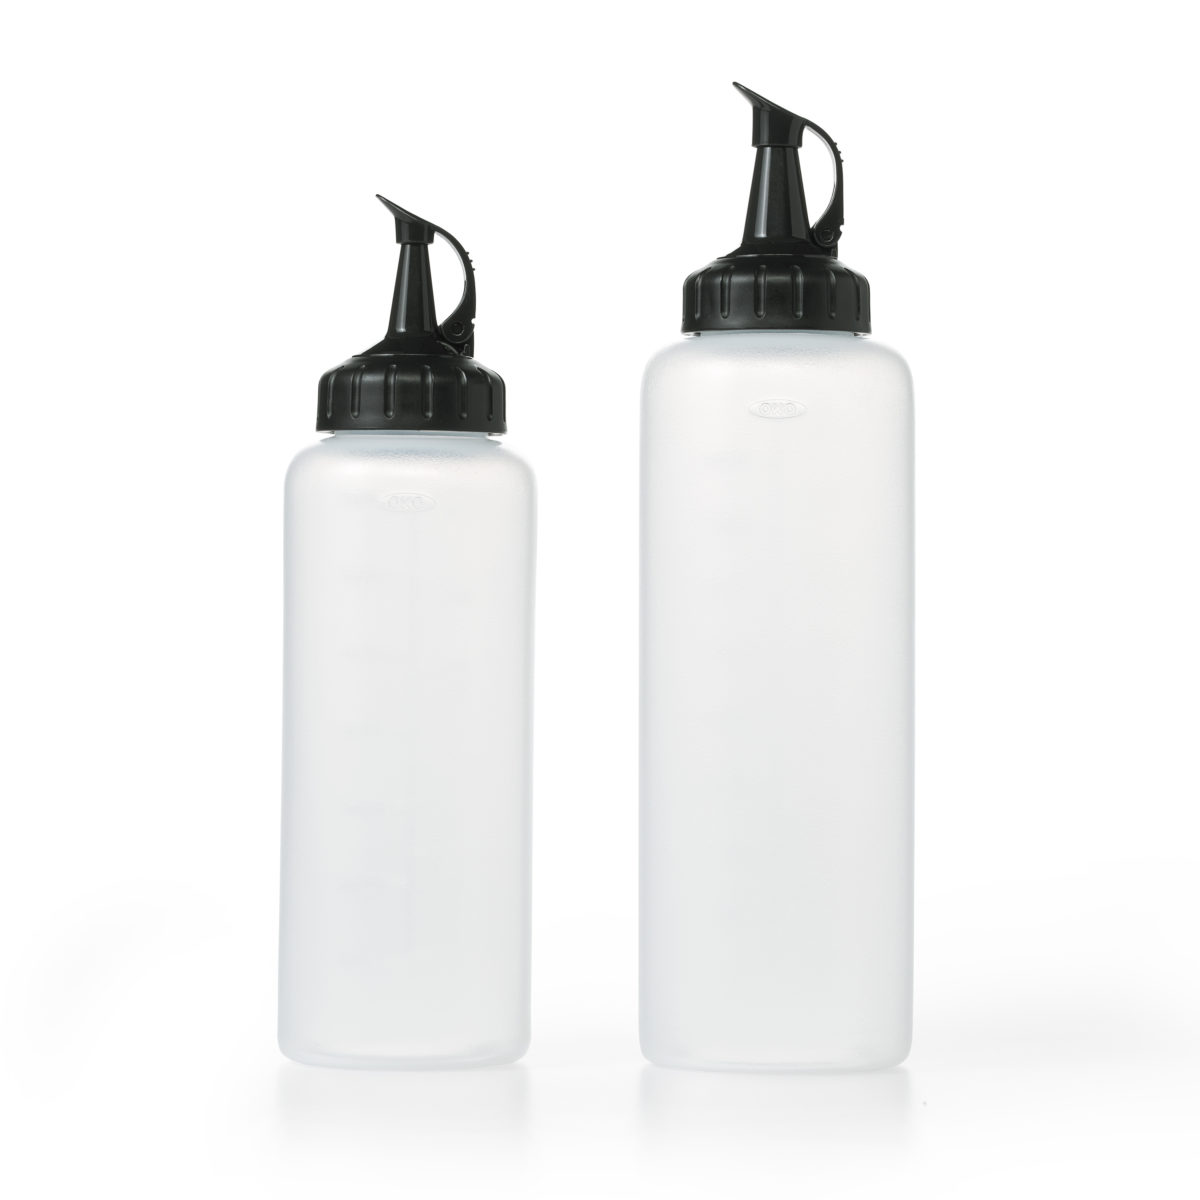 oxo airstream chef squeeze bottles sauce oil_3